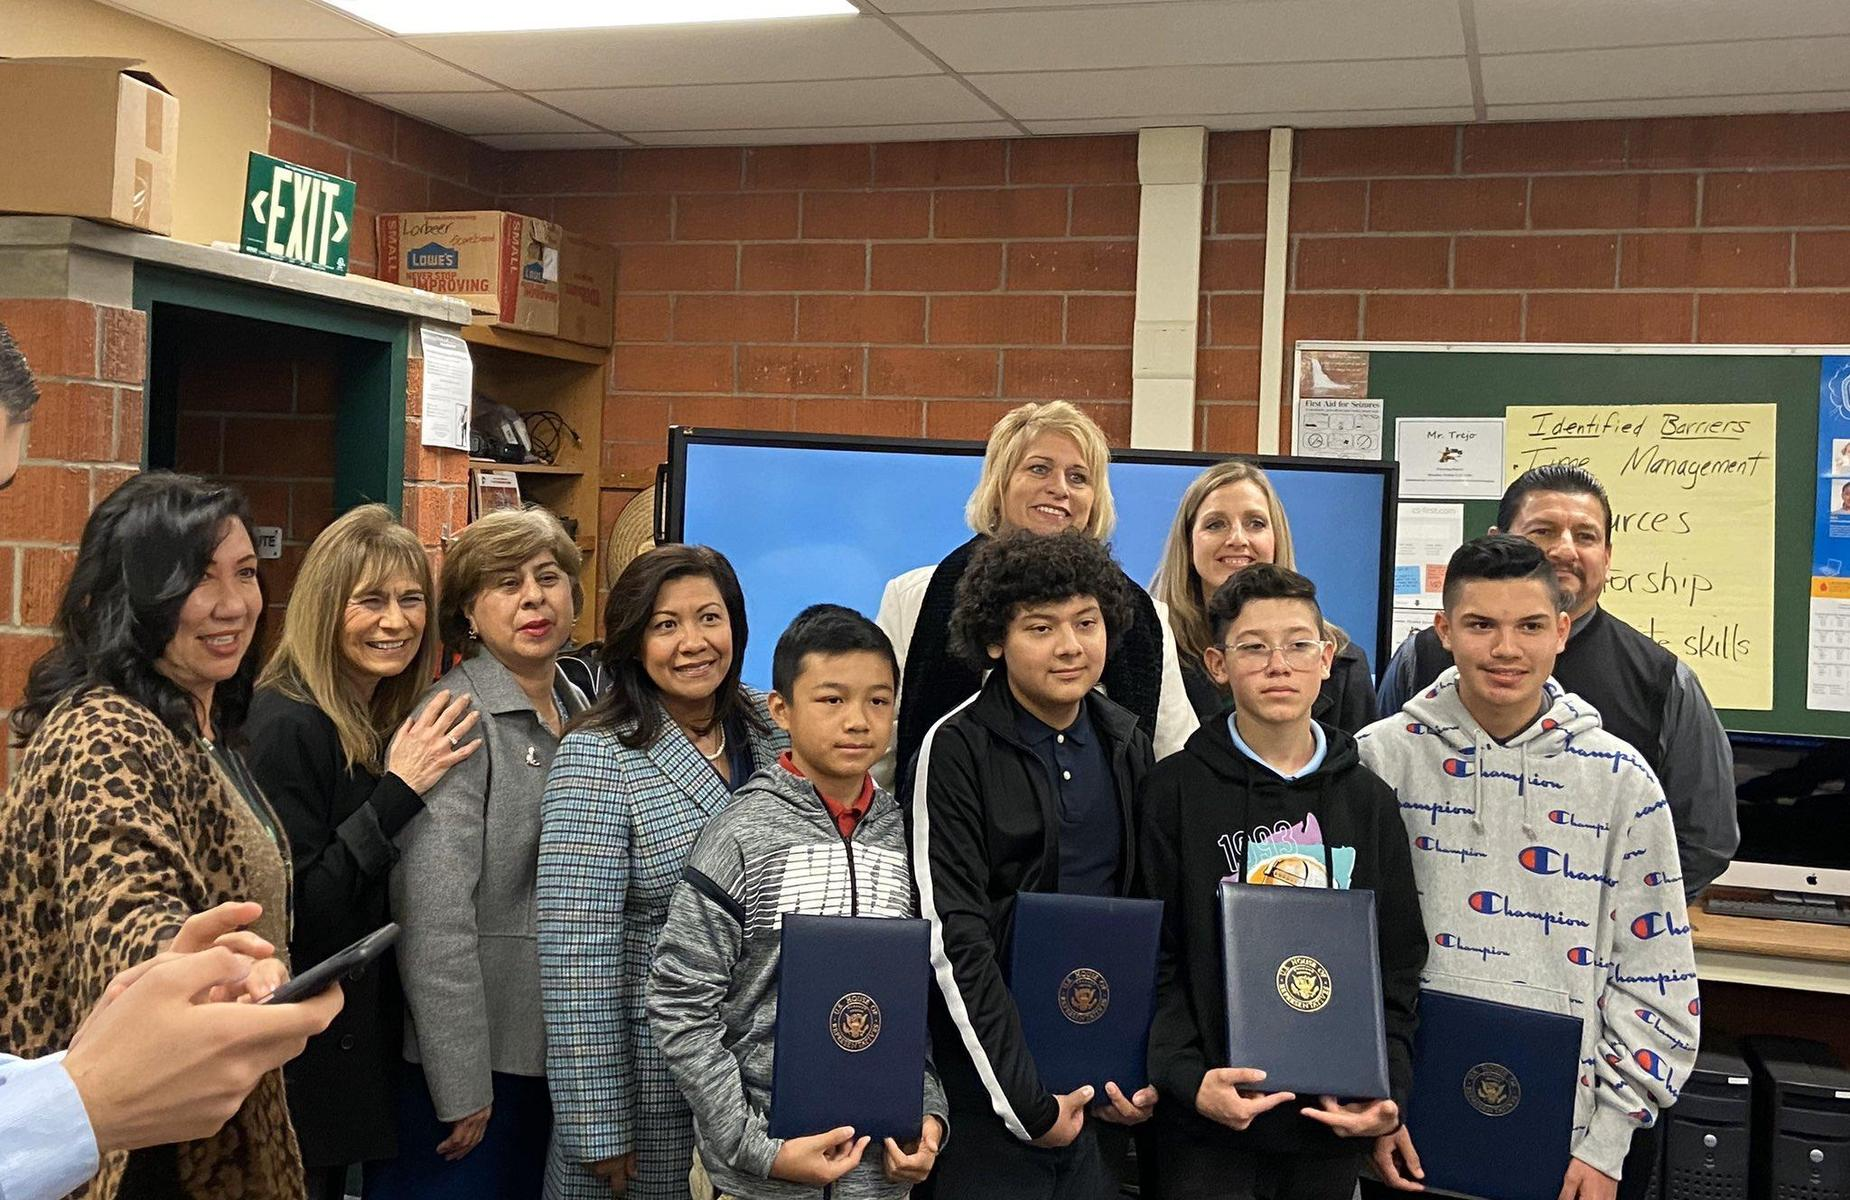 So proud of our Lorbeer students, under the leadership of Mr. Trejo, for winning the Congressional App Challenge! A heartfelt Thank You to U.S. Representative @NormaJTorres and her team for coming to personally celebrate our students! What an honor! #proud2bepusd